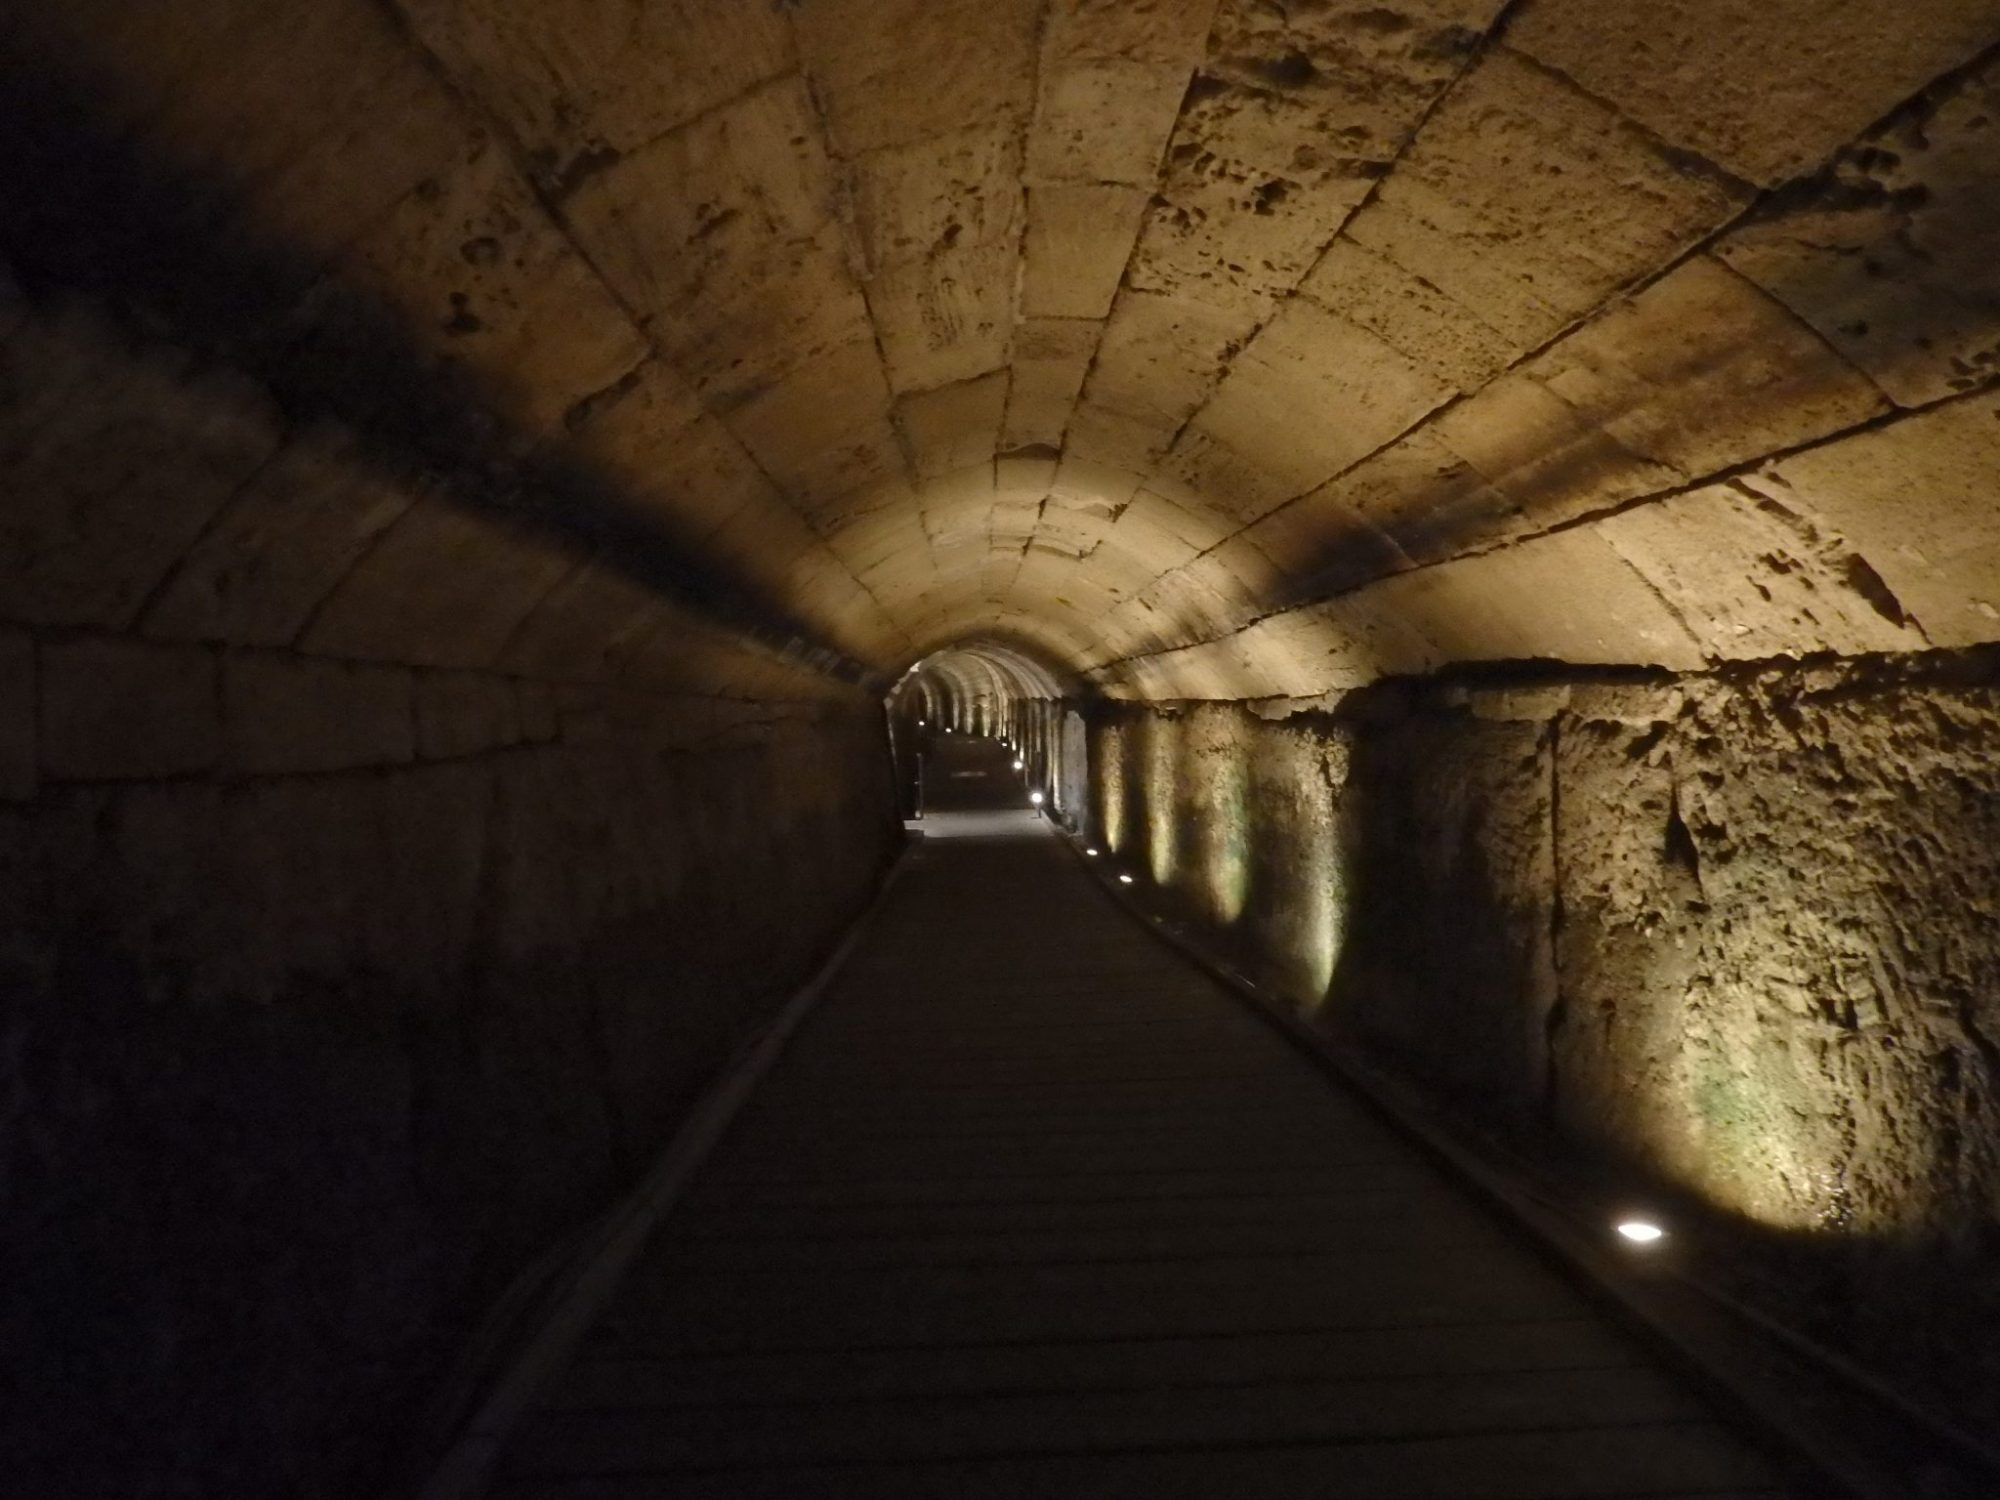 A view down the Templar Tunnel, which linked the Templar's original fortress to the port.